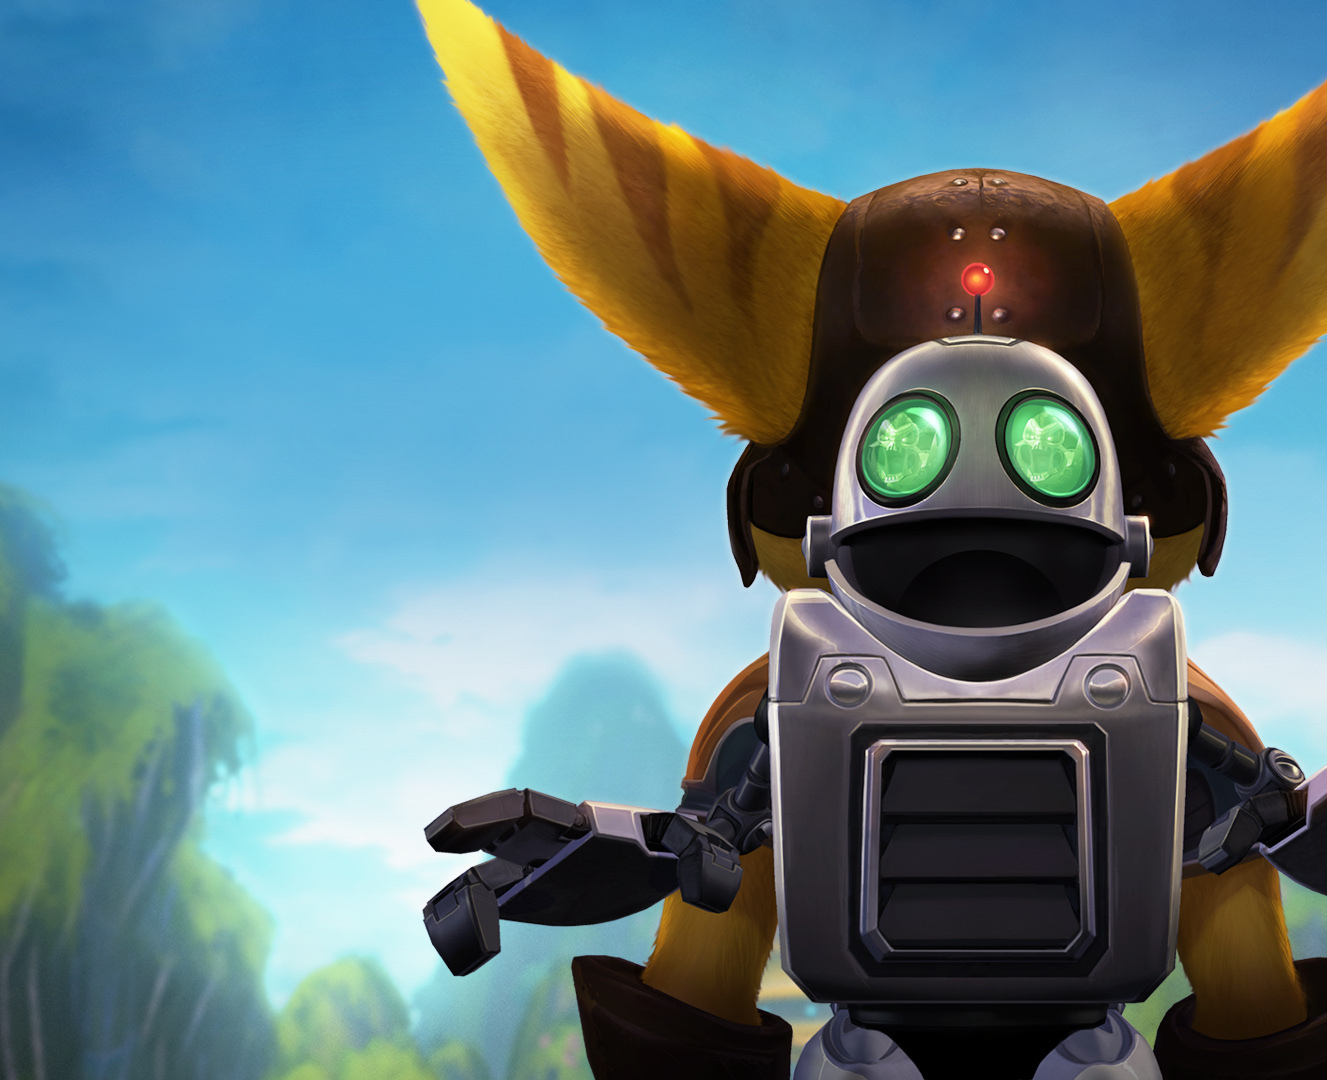 Why I Like Ratchet And Clank Ratchet And Clank Fanpop